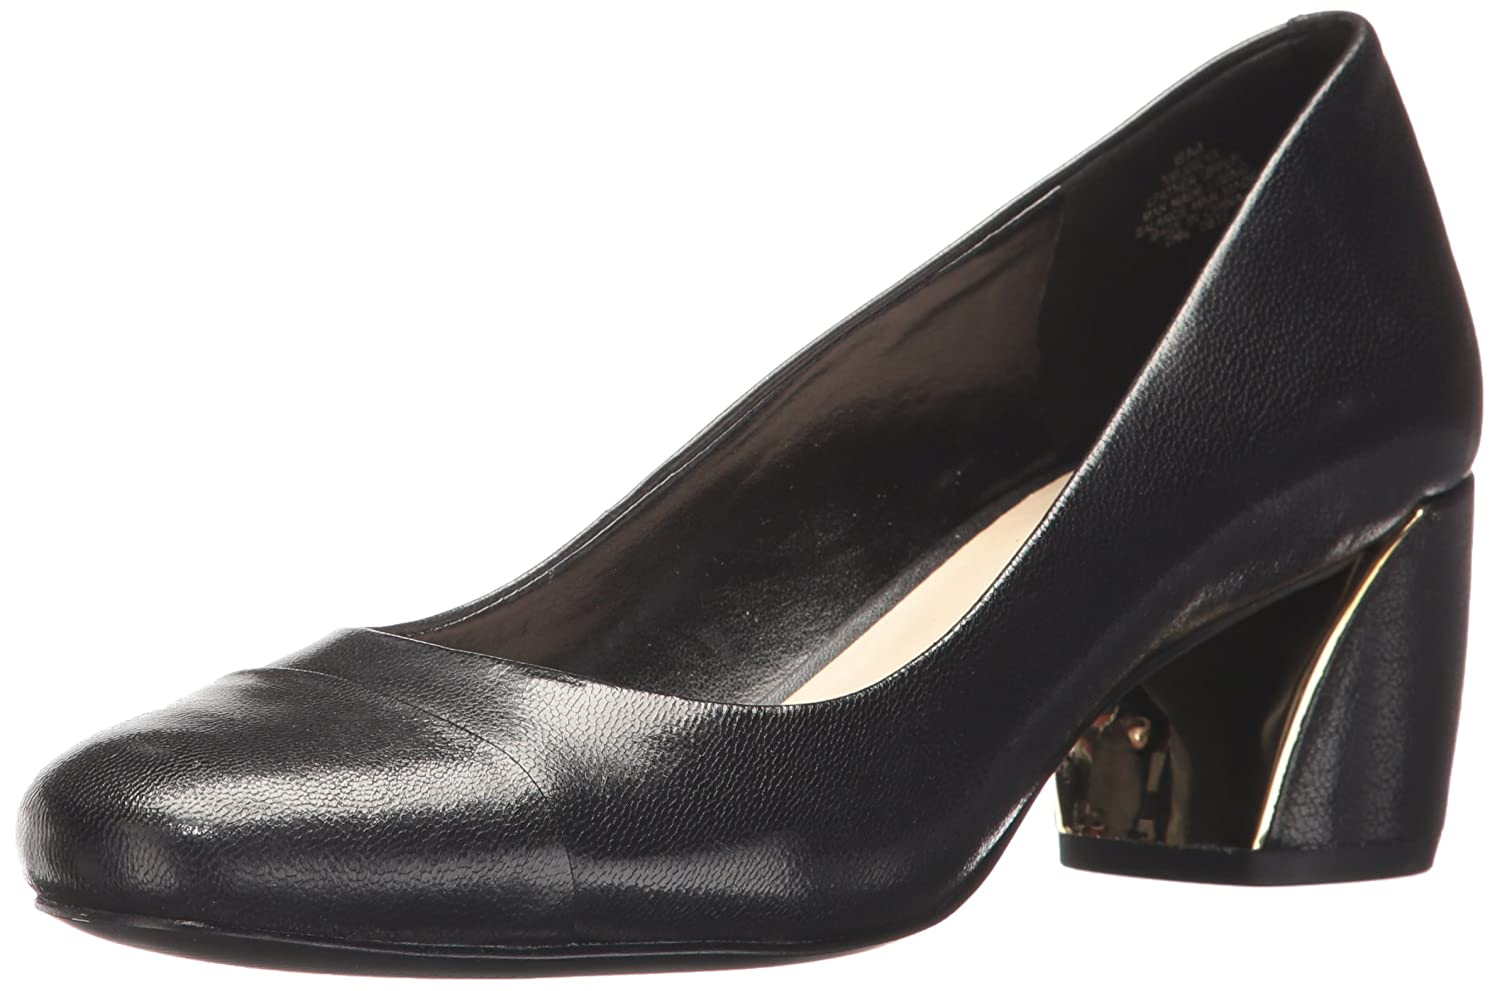 Nine West Women's Jineya Leather B0711HLGD8 6 B(M) US|Black Leather